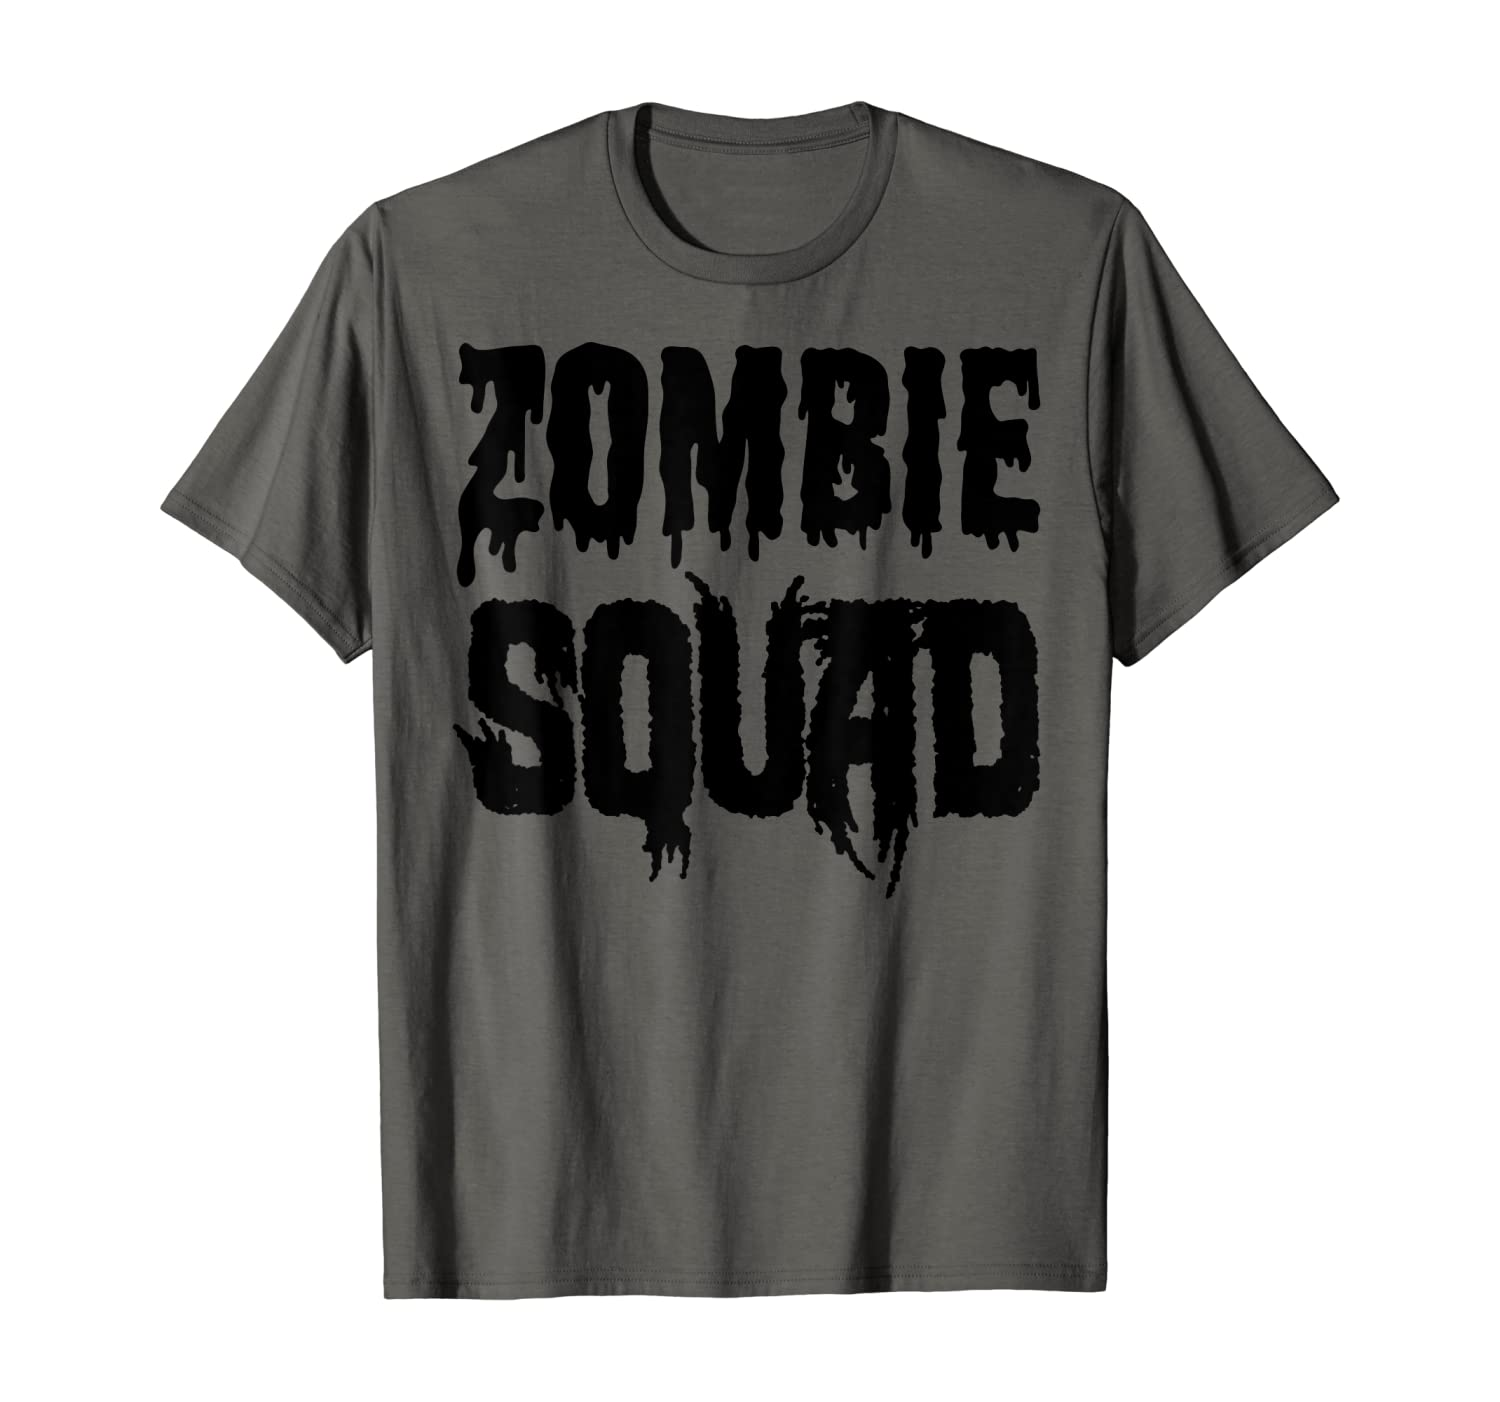 Halloween Zombie Funny Gift - Zombie Squad T-Shirt